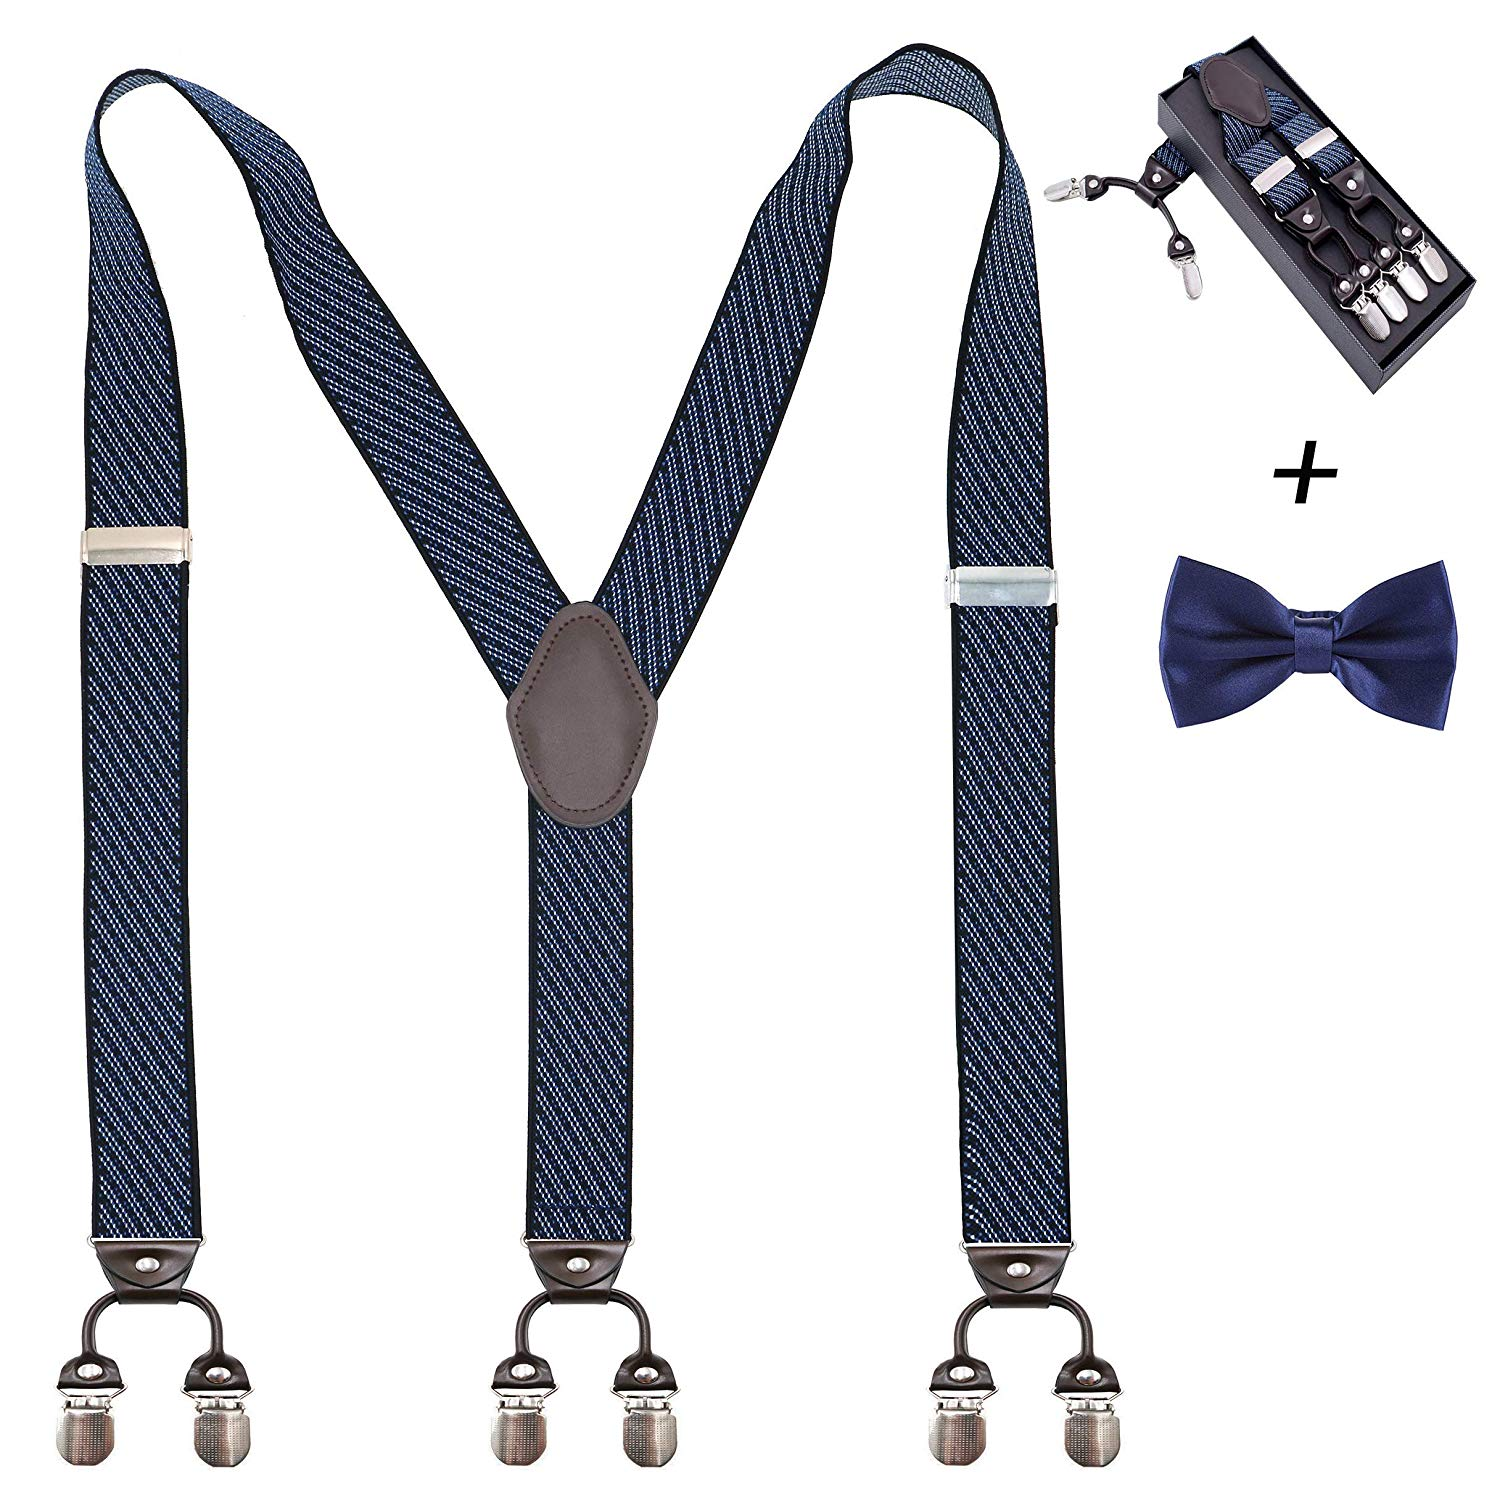 Khaki StellShine Mens Y-Back Tuxedo Shoulder Suspenders with Adjustable /& Elastic Straps StellShine Men Suspenders with Heavy Duty Clips Big and Tall for Suits//Pants Formal Events Wedding Mens Suspenders Heavy Duty Clips